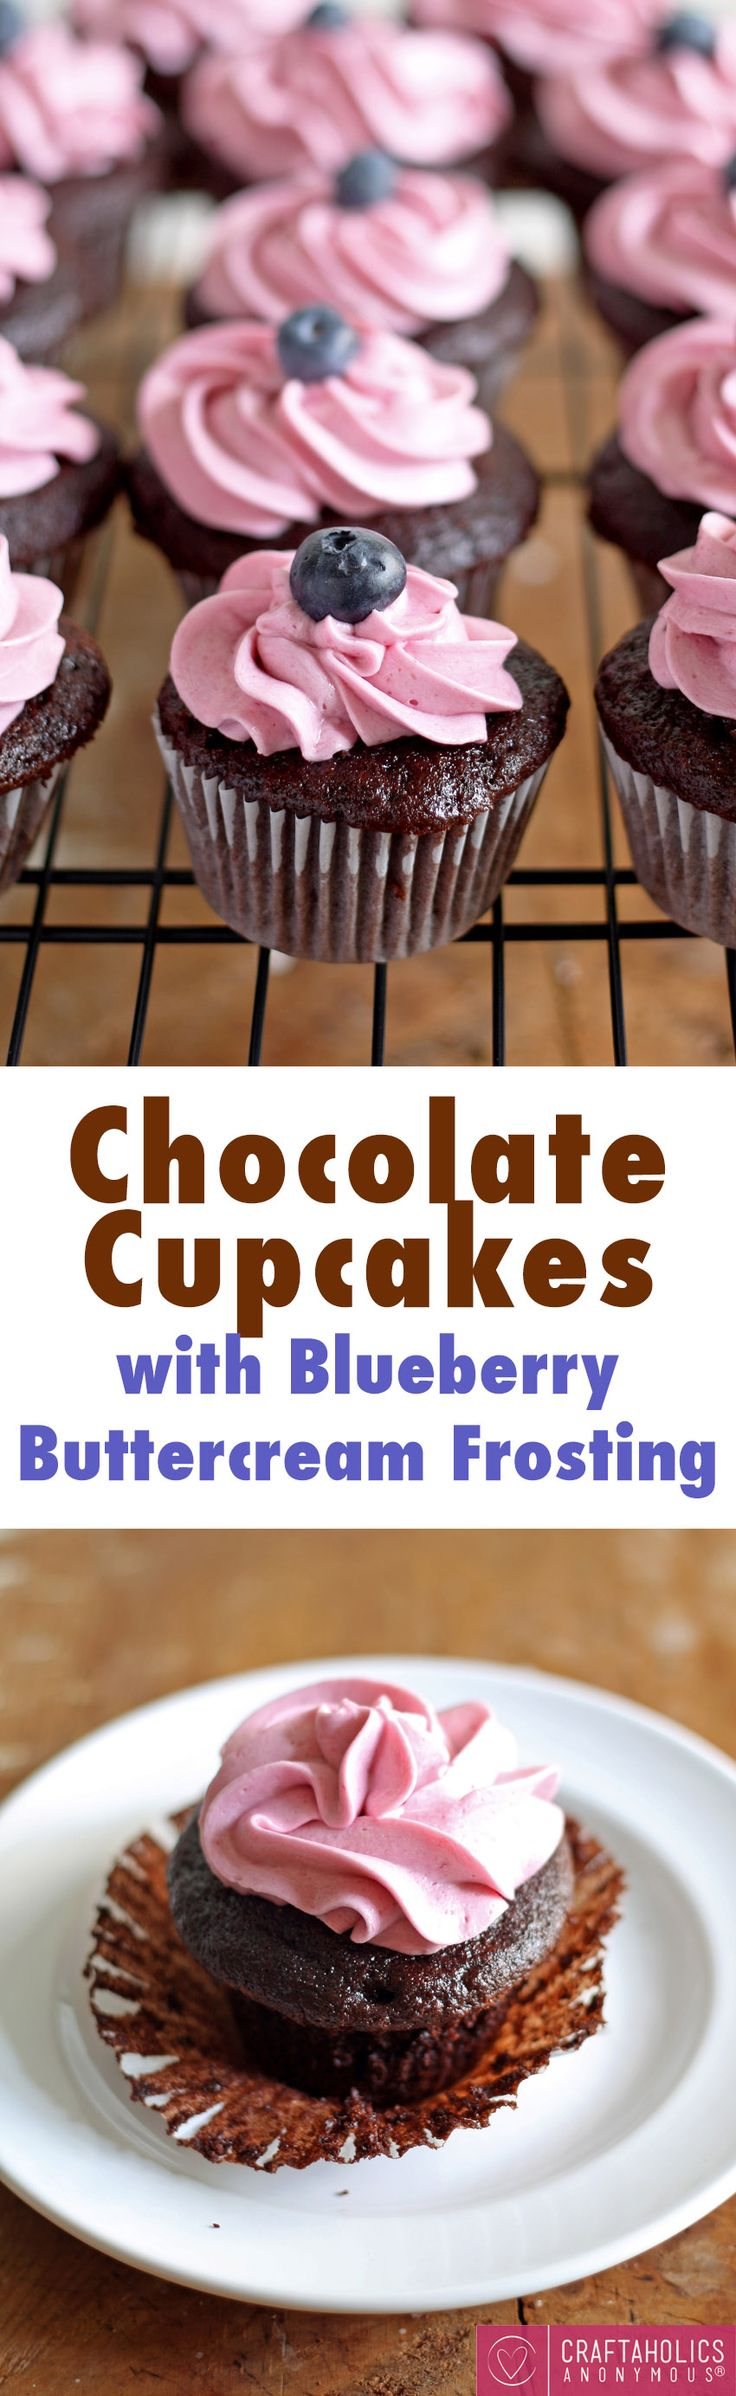 Chocolate Cupcakes with Blueberry Buttercream Frosting A Collection of the Best Cupcake Blogs. Get the Top Stories on Cupcake in your inbox